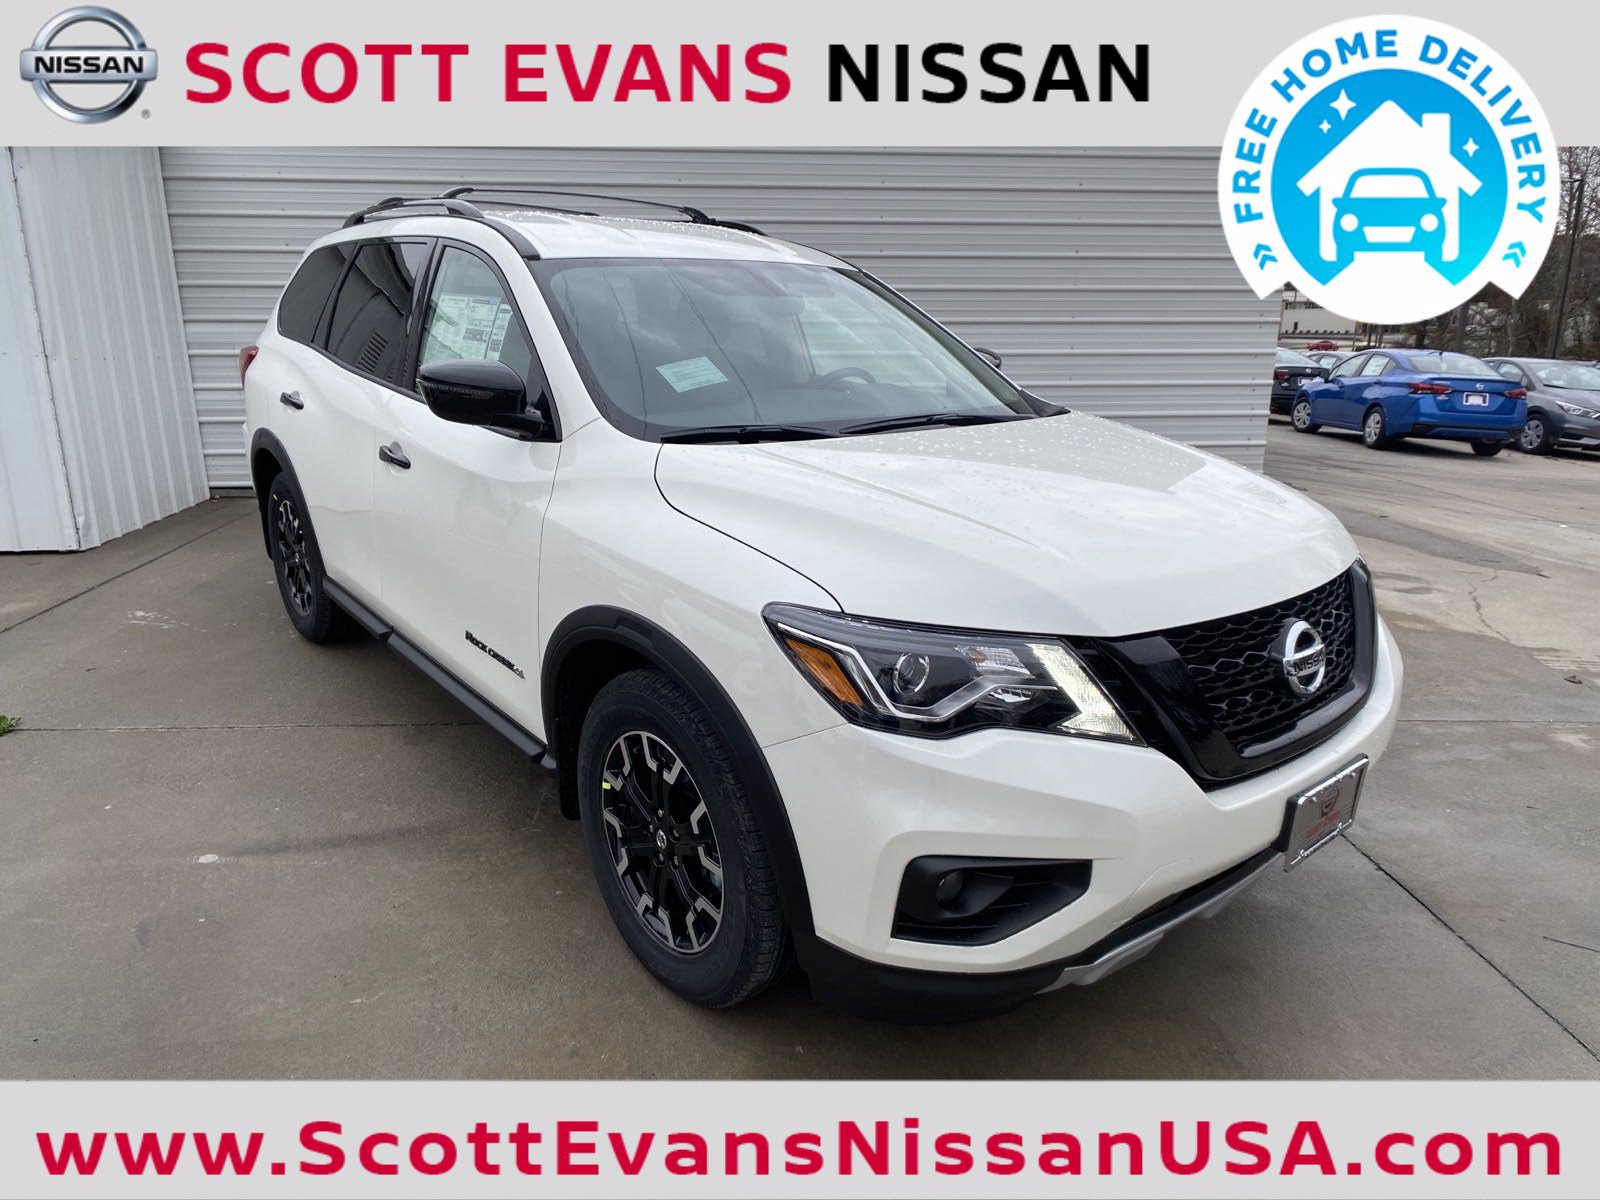 New 2020 Nissan Pathfinder SV Rock Creek